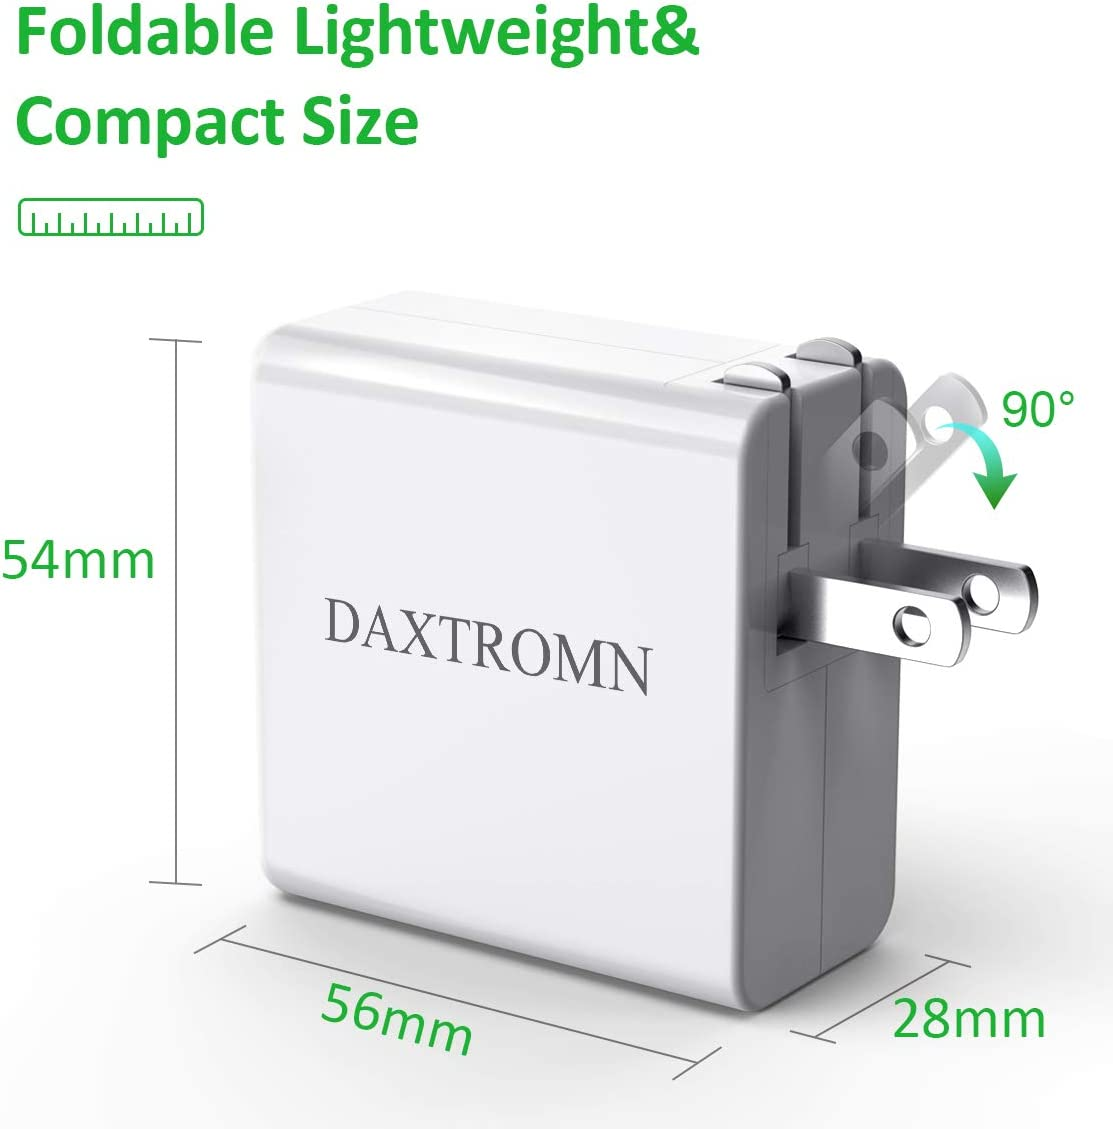 iPad Pro 2018 and More USB C Charger DAXTROMN 30W PD 3.0 Wall Charger Type C Fast Charging Power Delivery Foldable Adapter Compatible with iPhone 11 Pro Max MacBook Pro Air